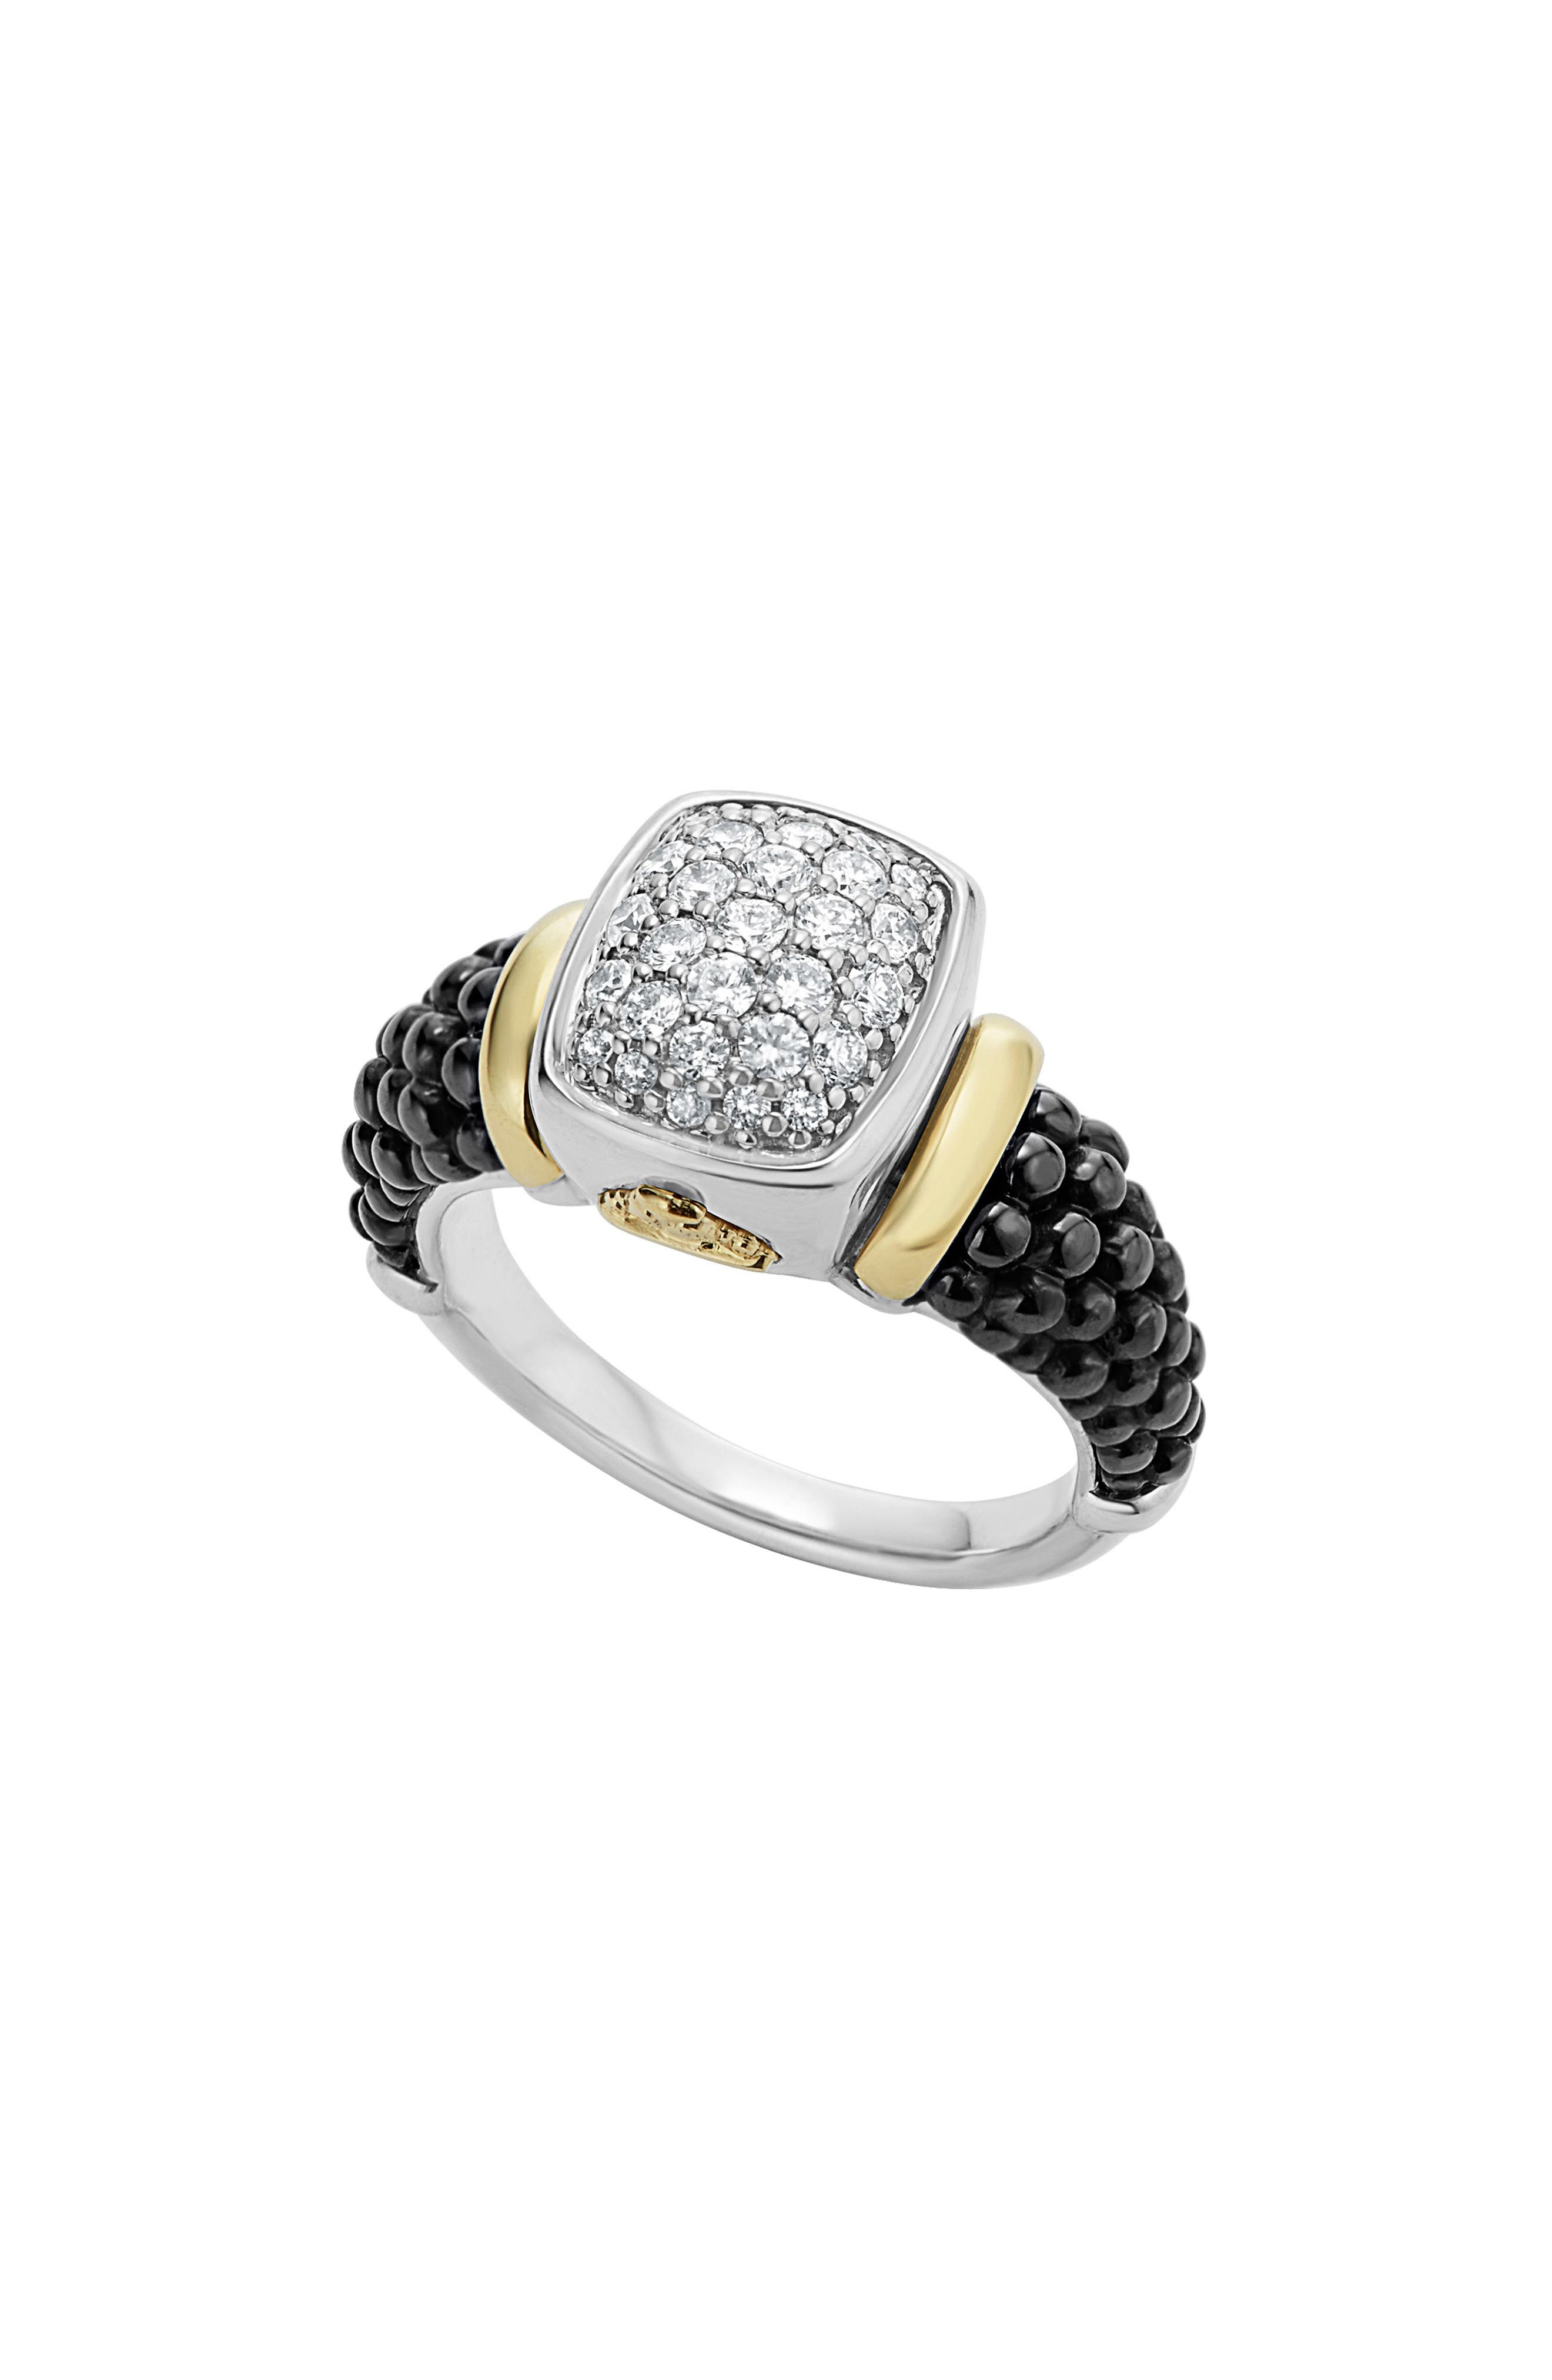 'Caviar' Diamond Ring,                             Main thumbnail 1, color,                             BLACK/ GOLD